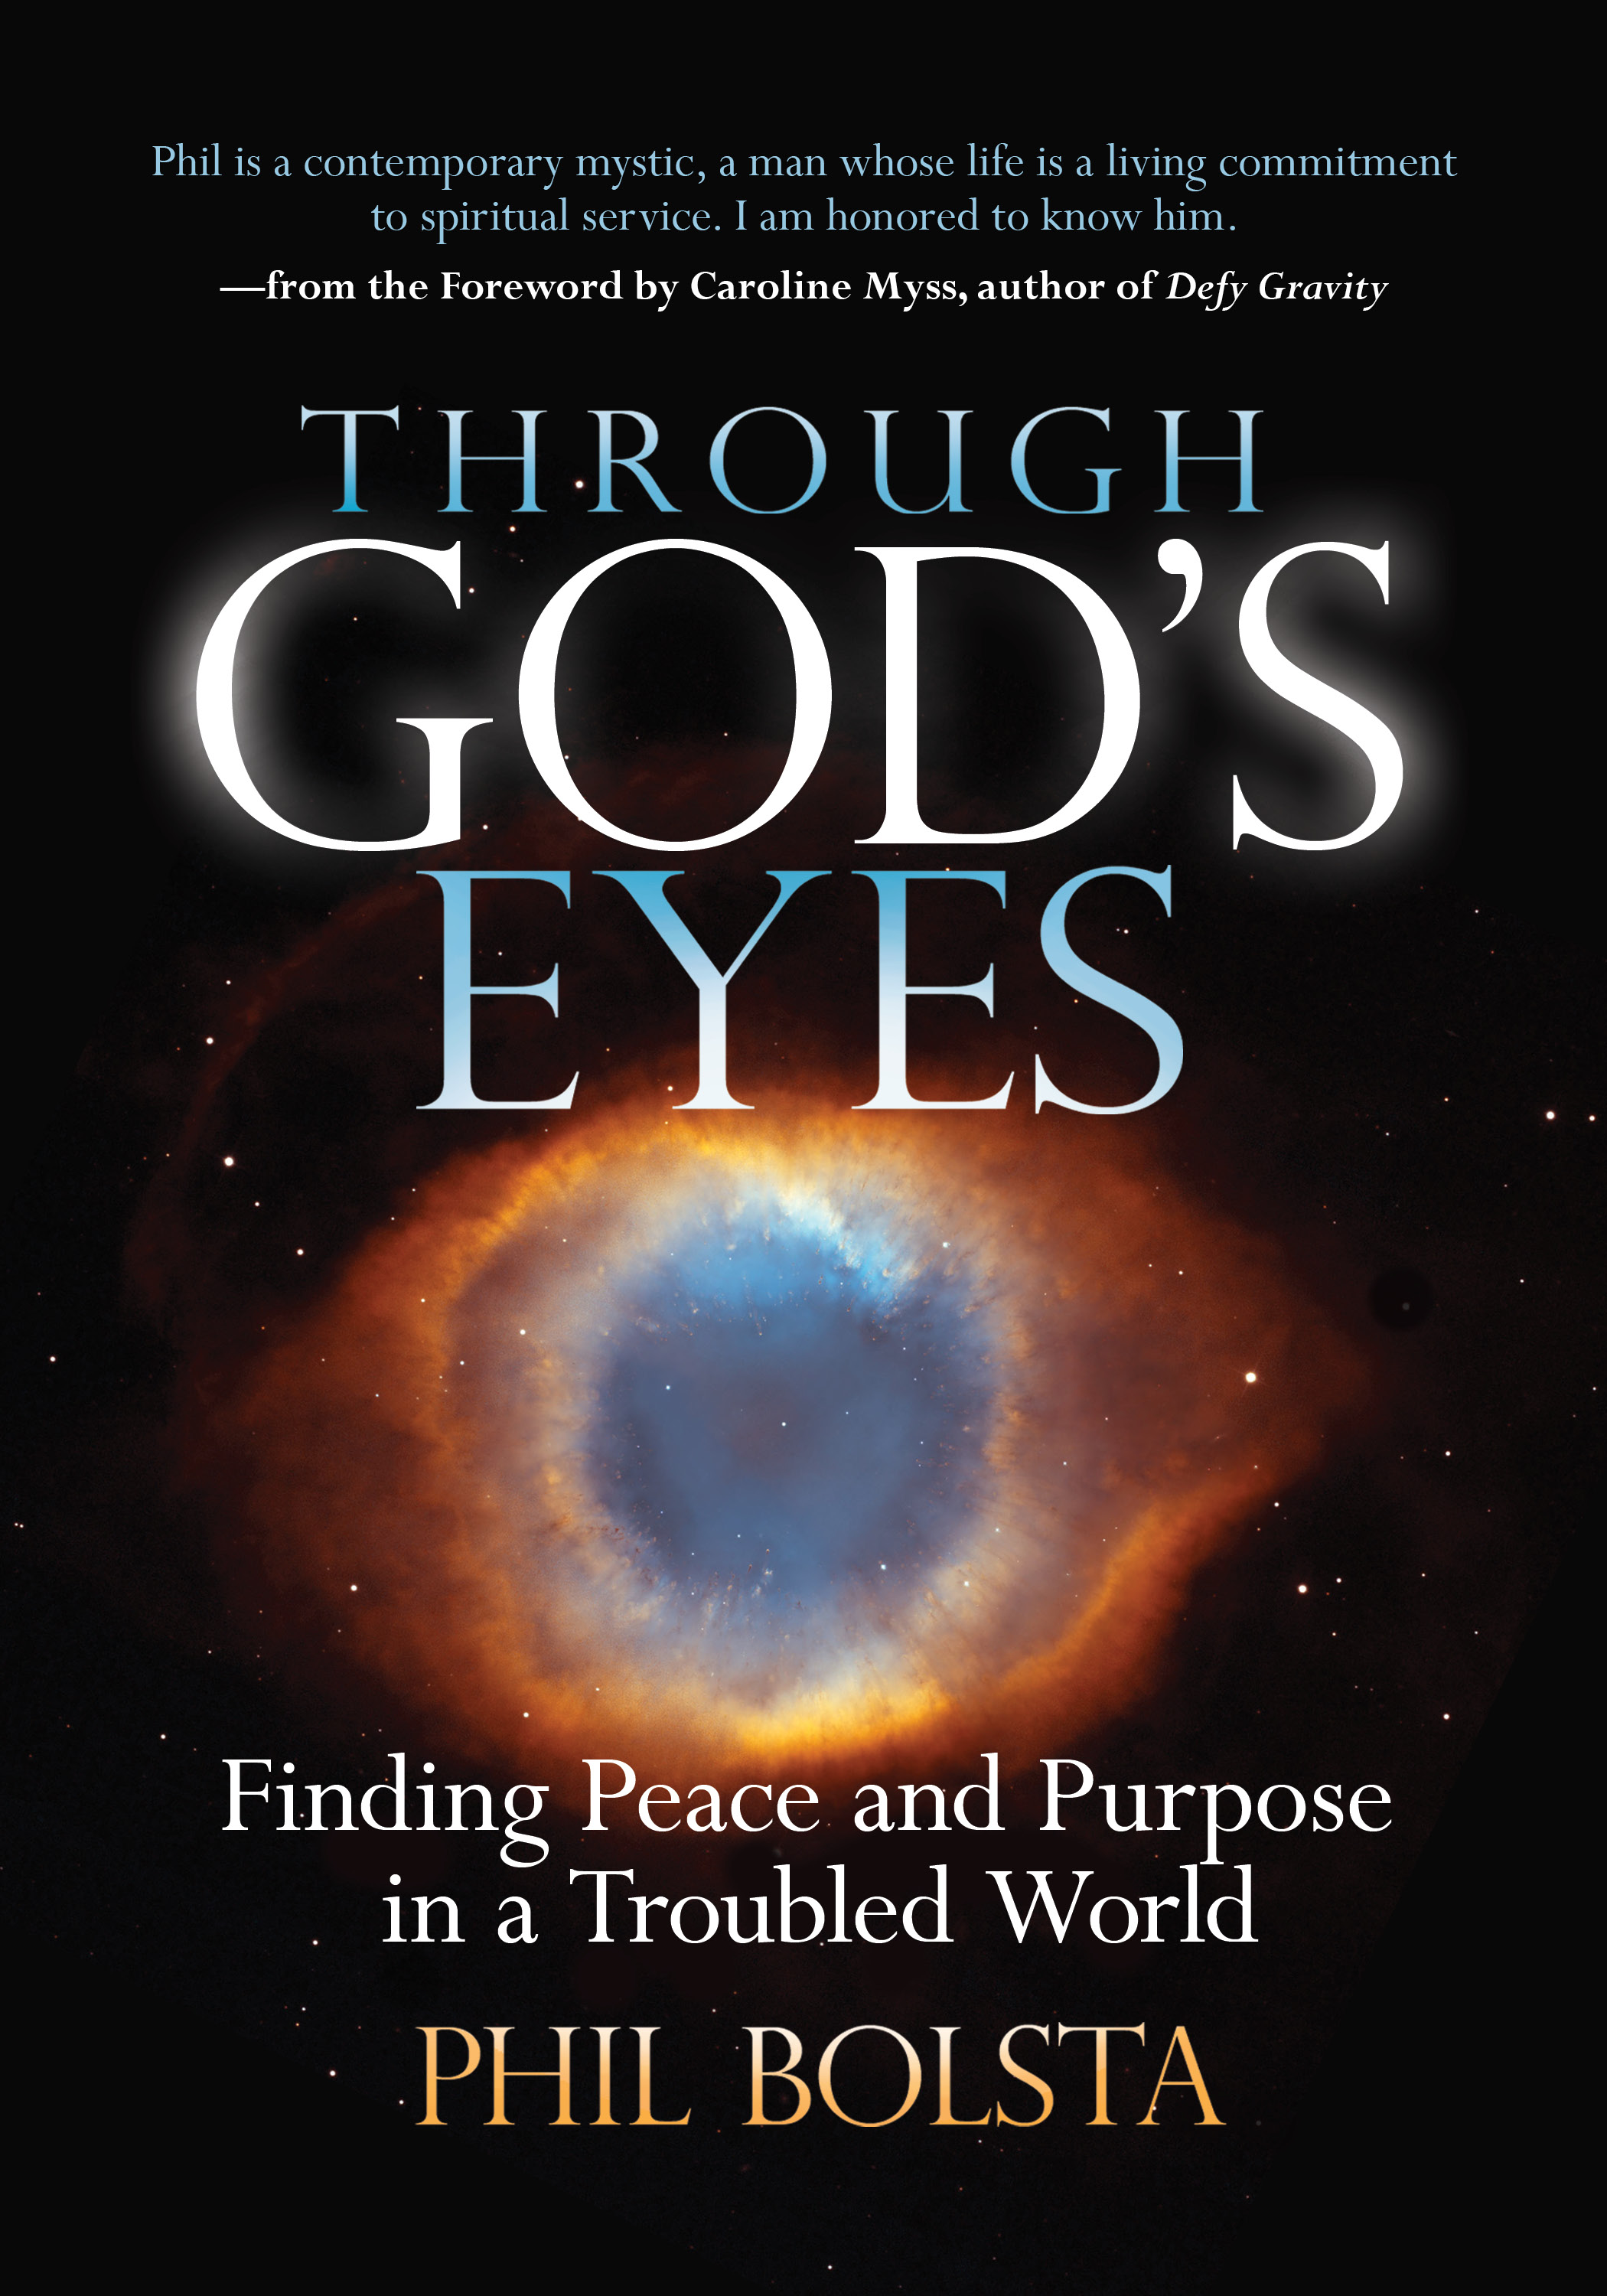 """Through God's Eyes""—Sources of Quotes 